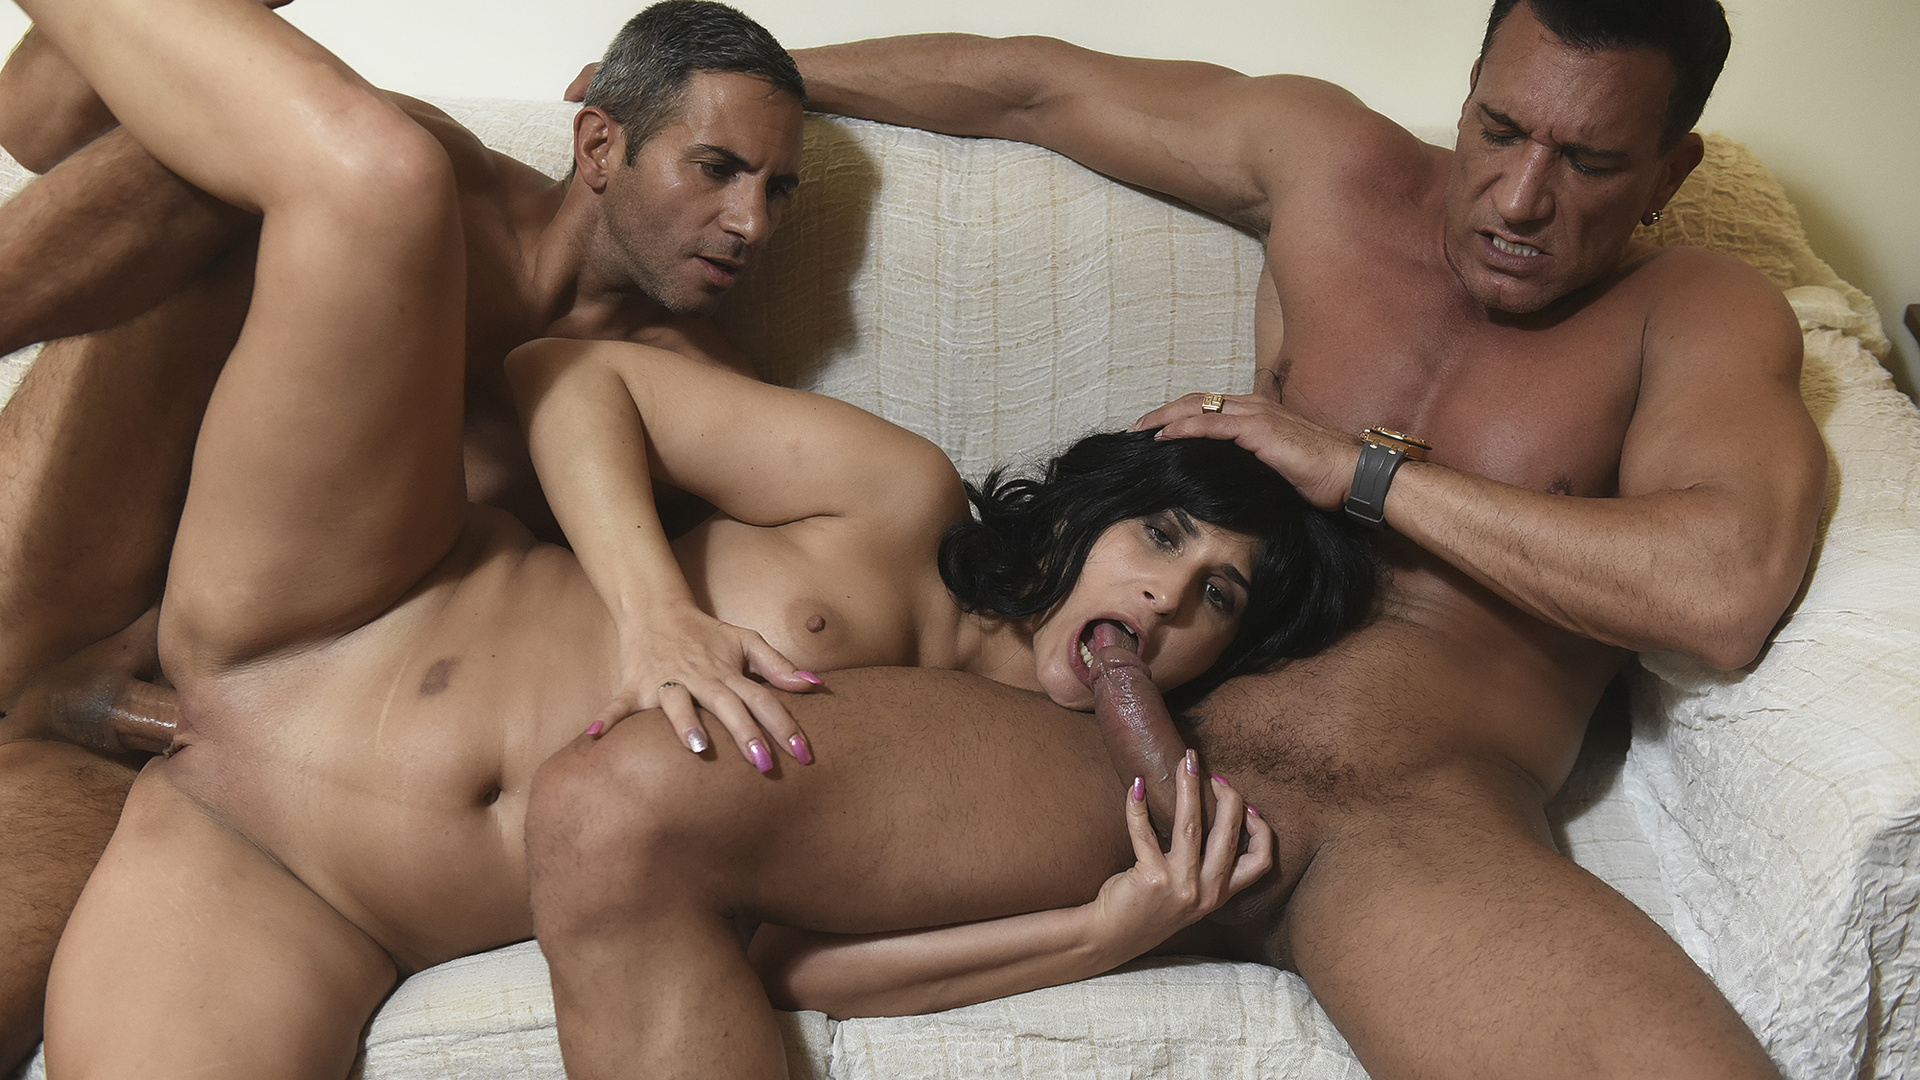 Threesome with my boyfriend and his best friend